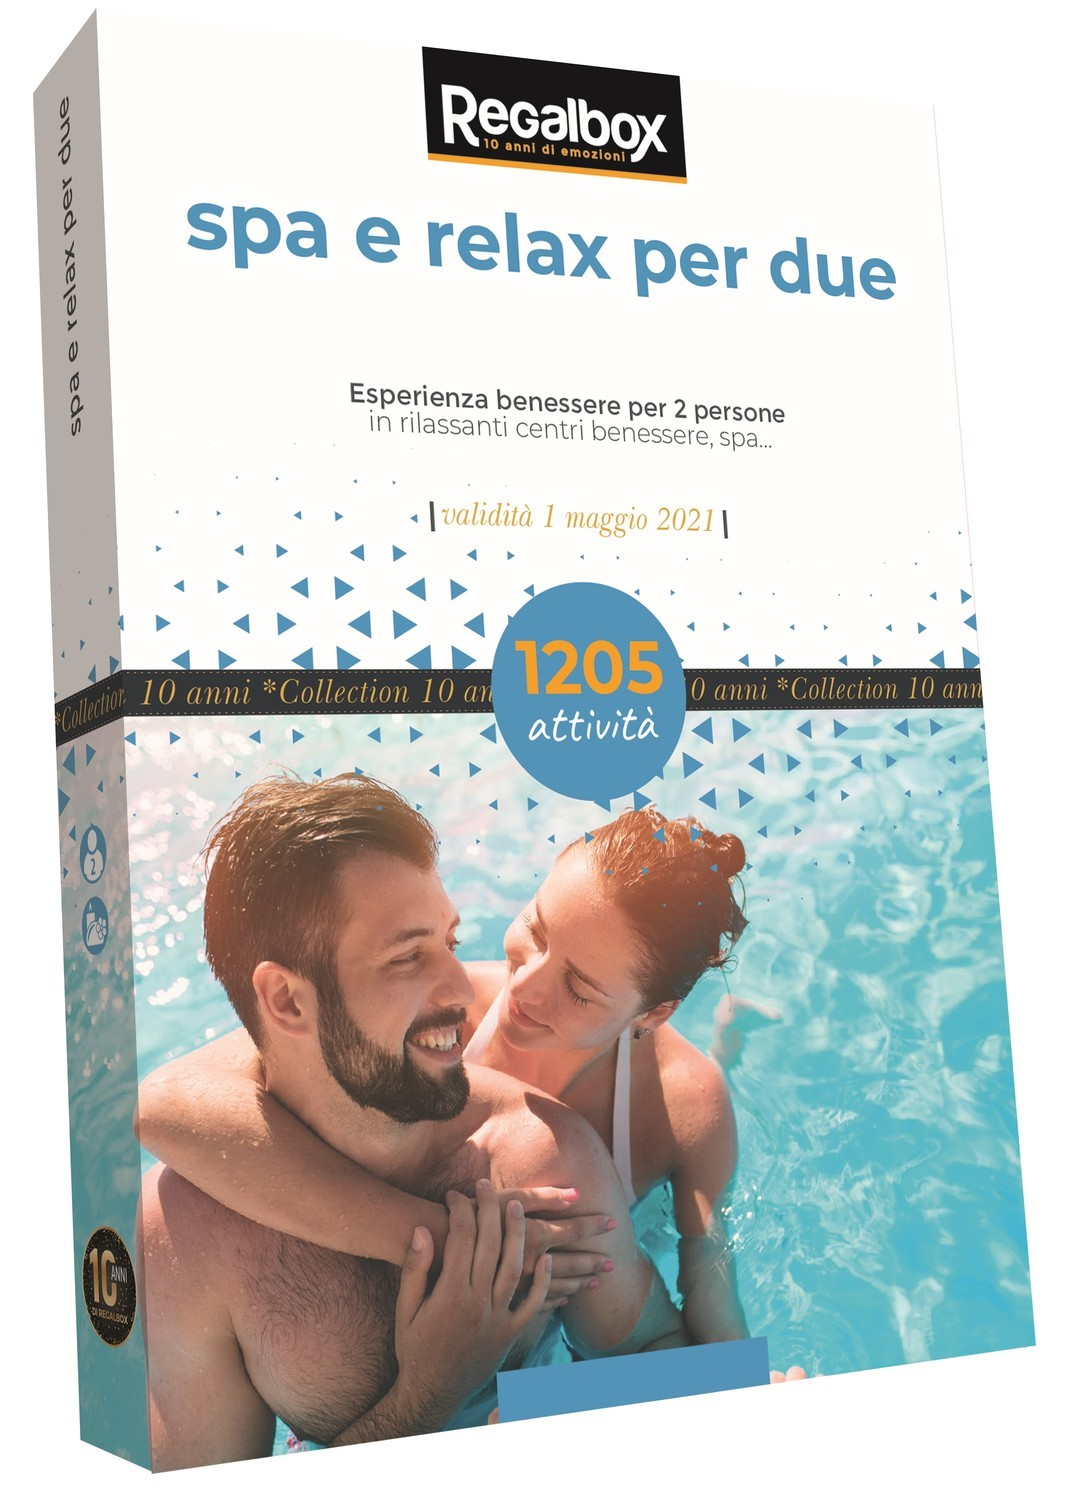 Spa e relax per due REGALBOX